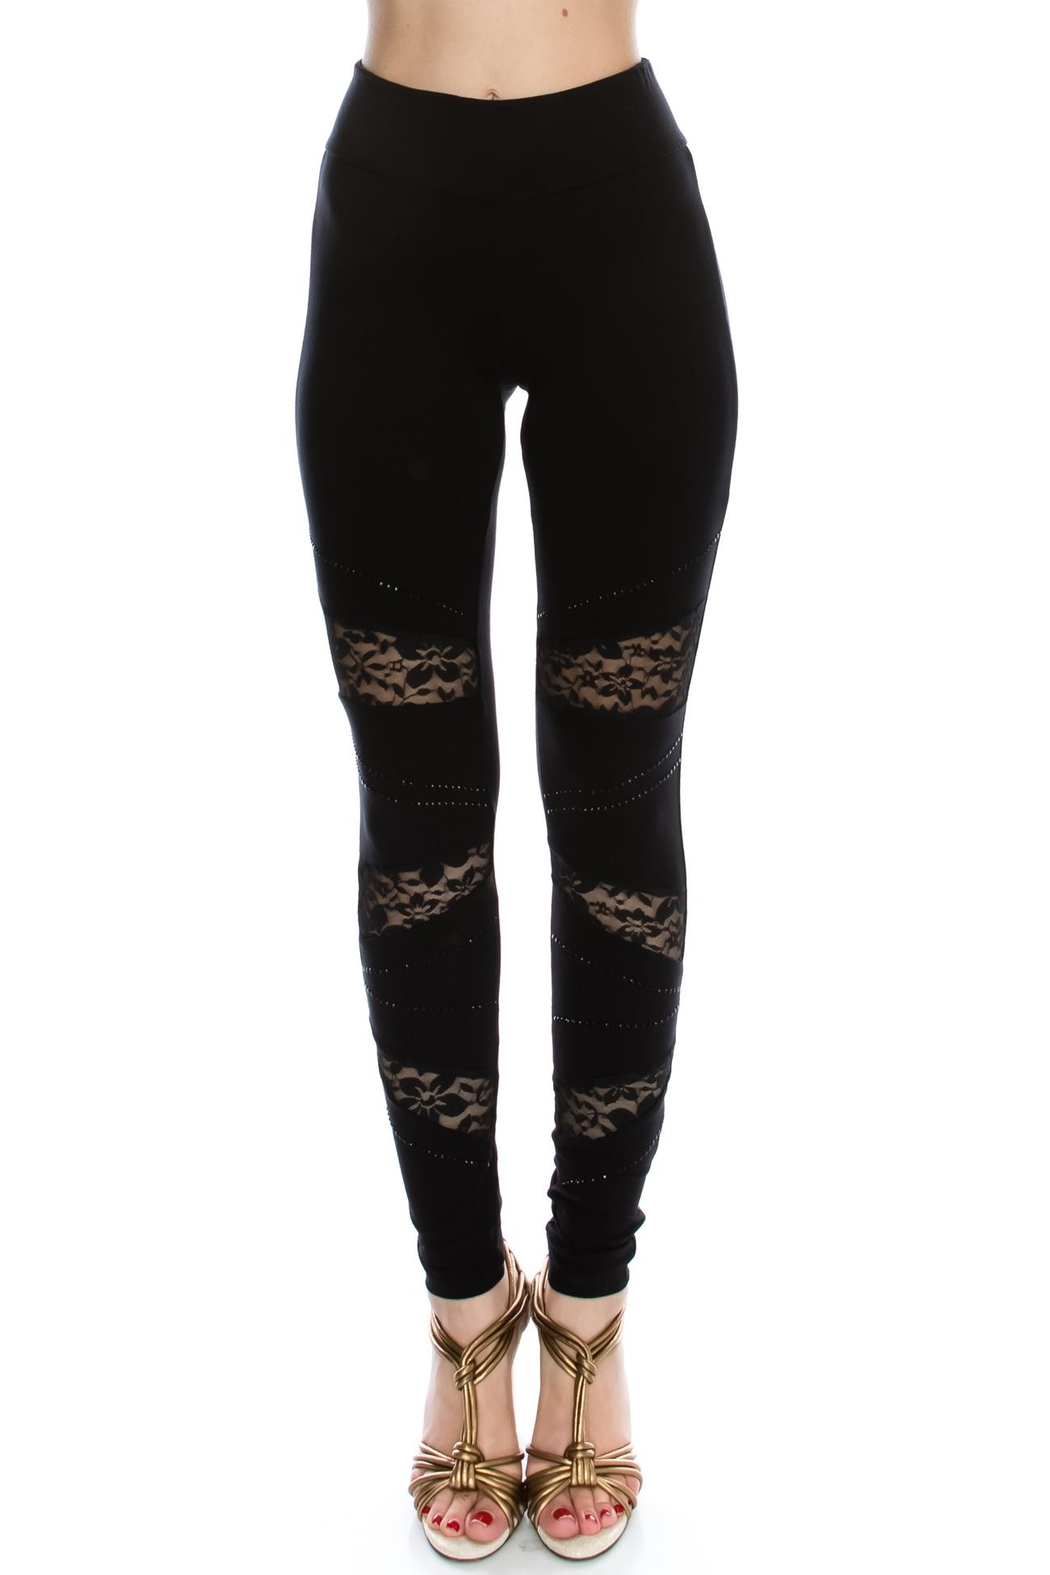 Vocal Apparel Lace Contrasted Leggings With Stones - Main Image